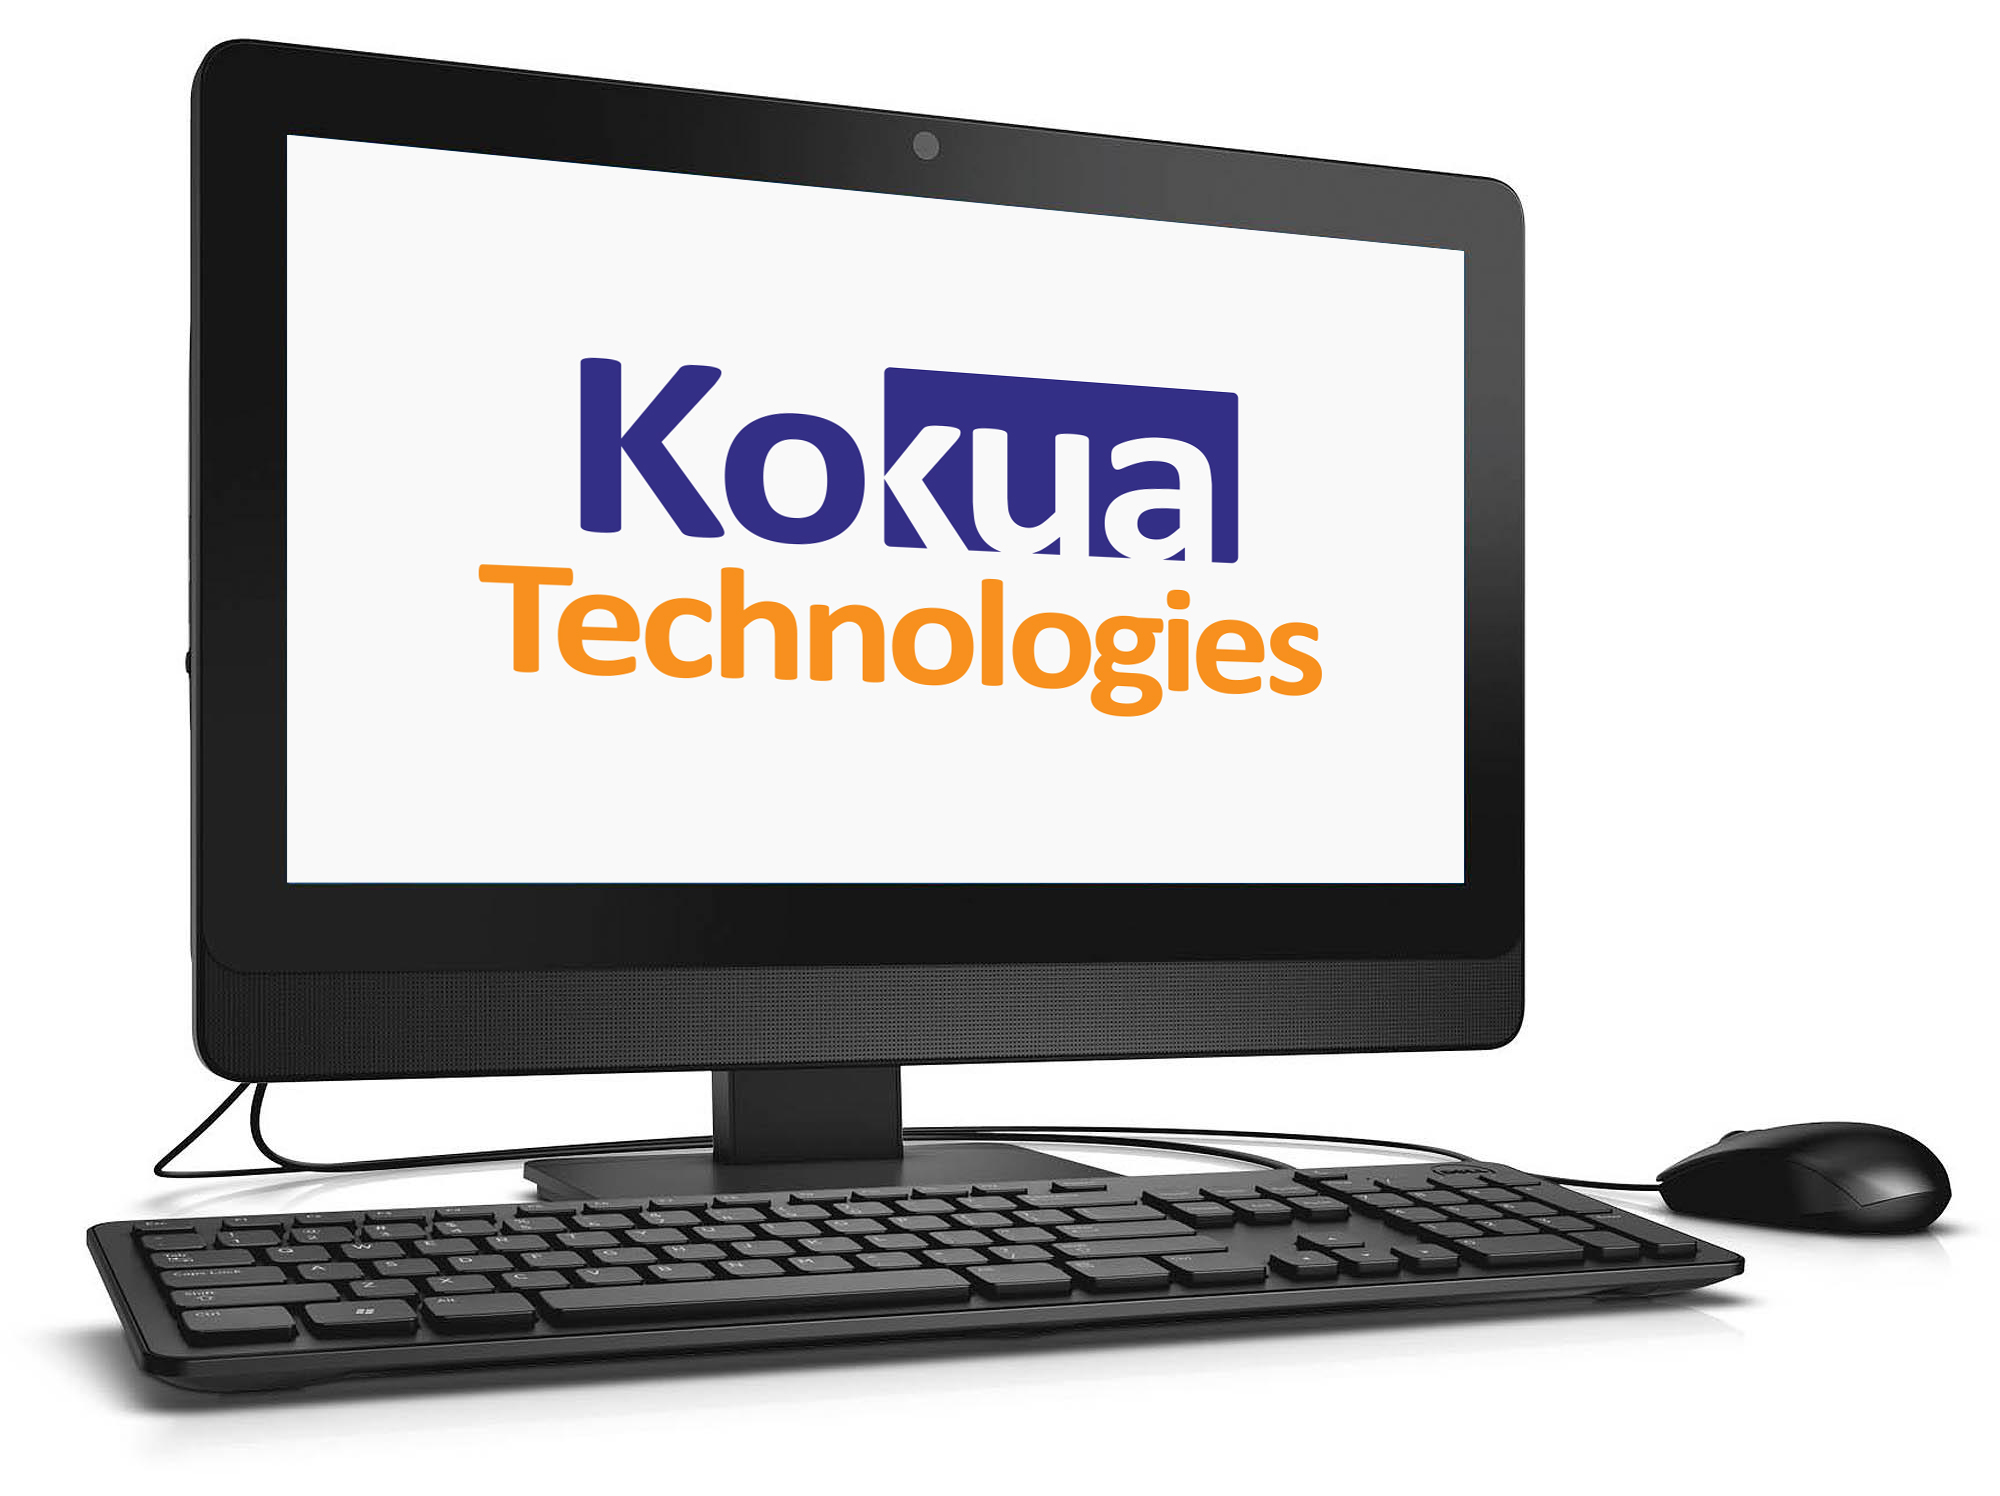 Kokua Technologies - IT Solutions for Small to Mid-sized Businesses